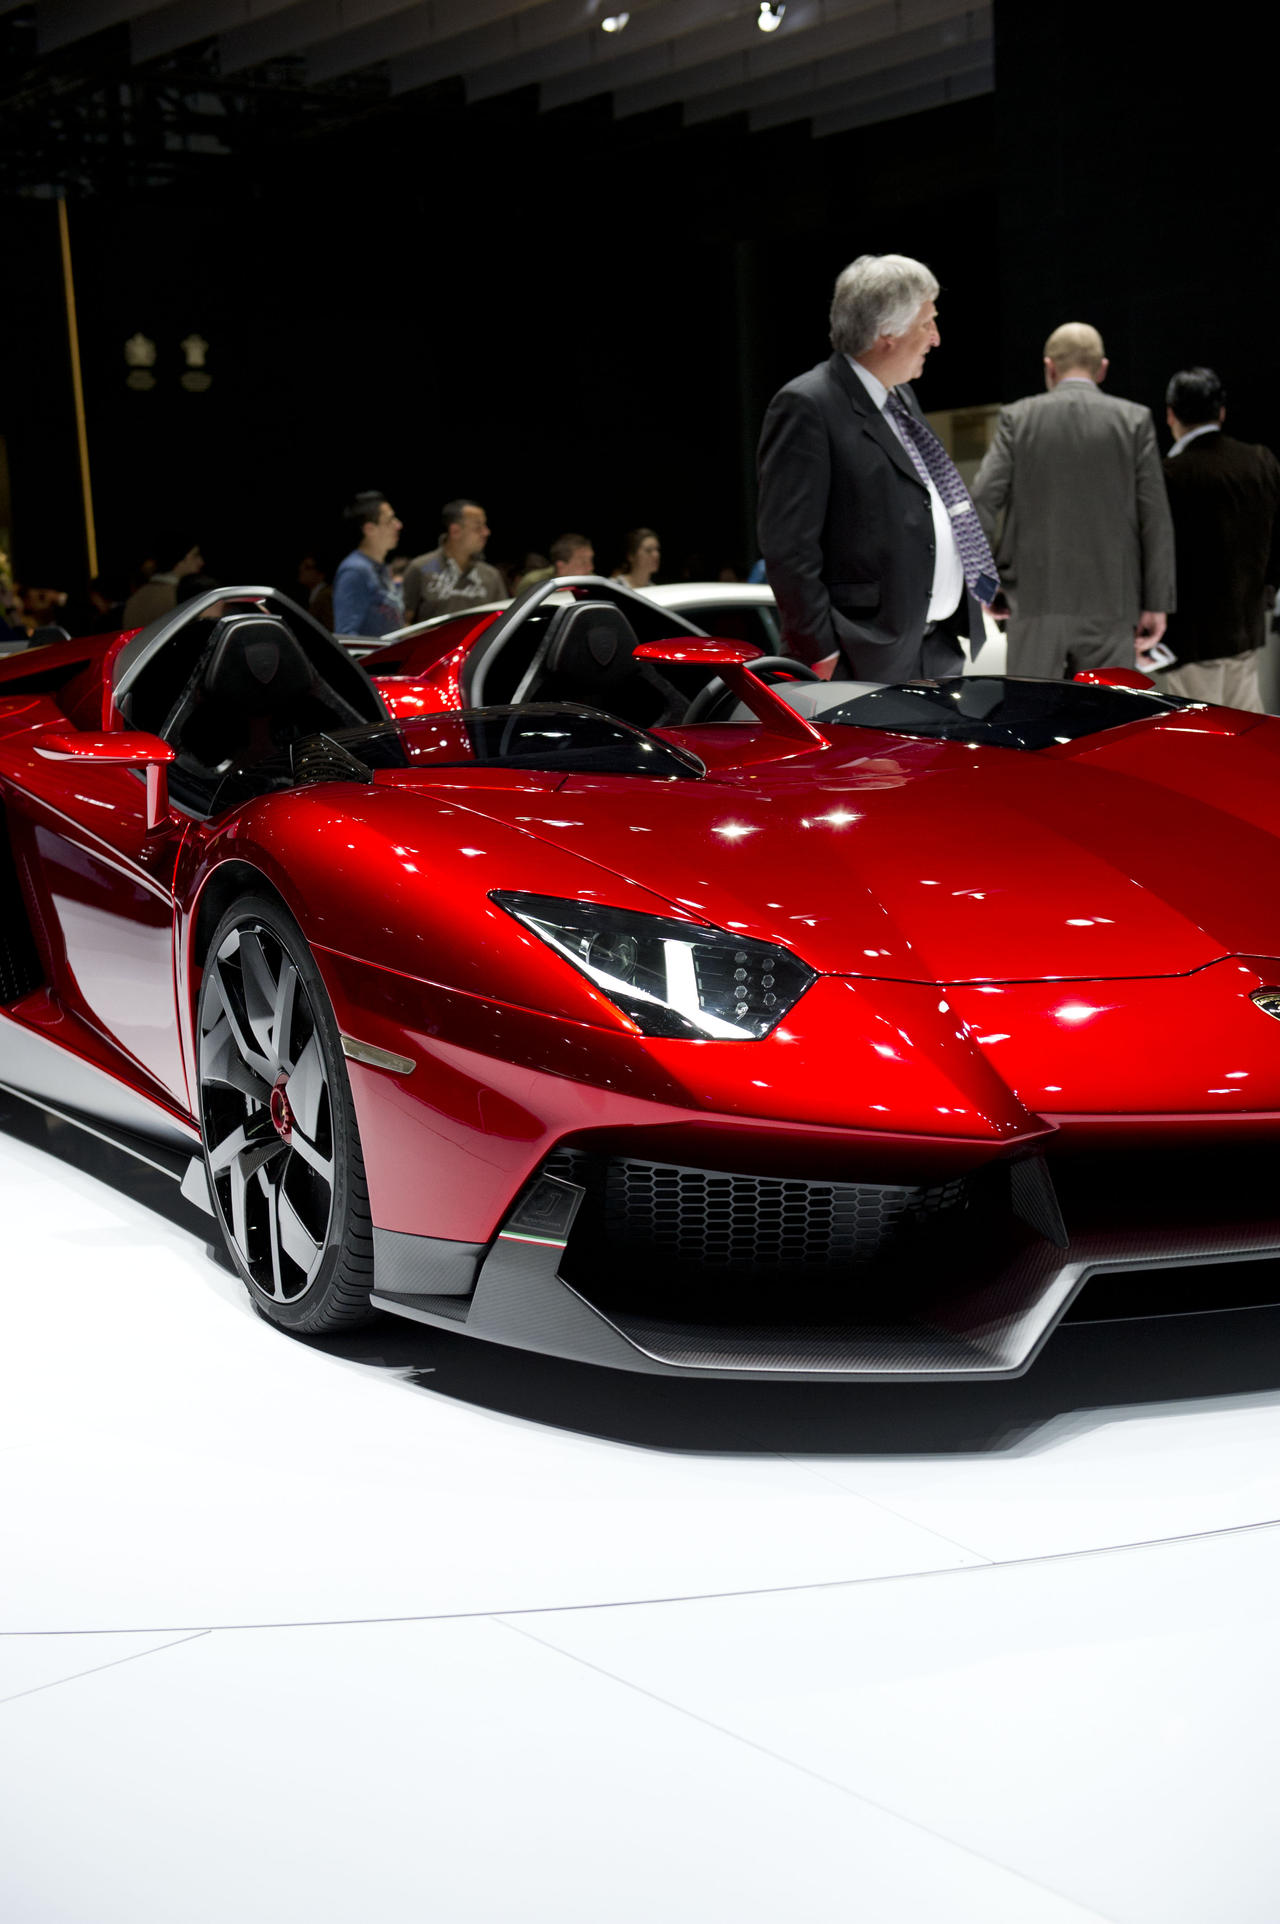 Salon de l 39 auto geneve xxiii by croc blanc on deviantart for Adresse salon de l auto geneve